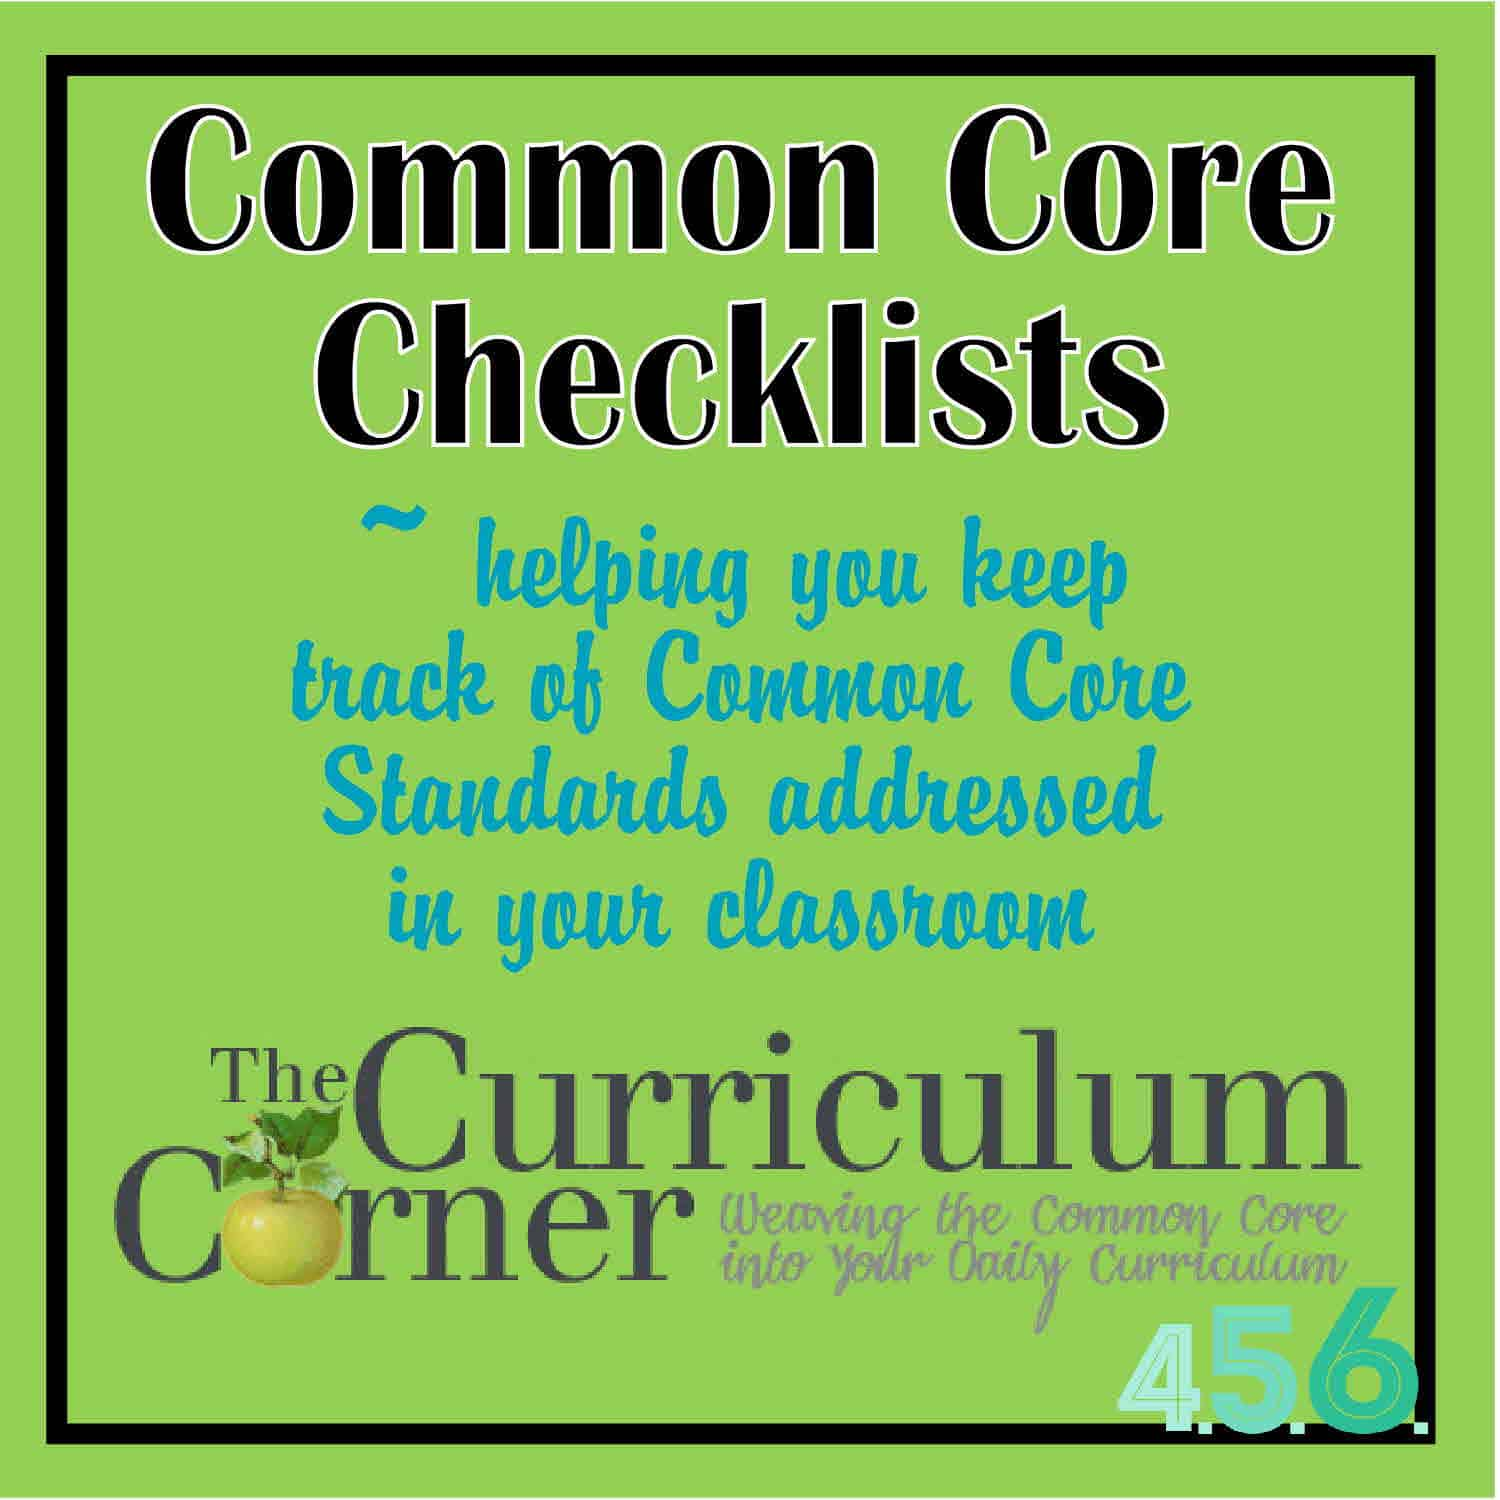 S Th Nd Eighth Gr De M C E Checklists By Curriculum